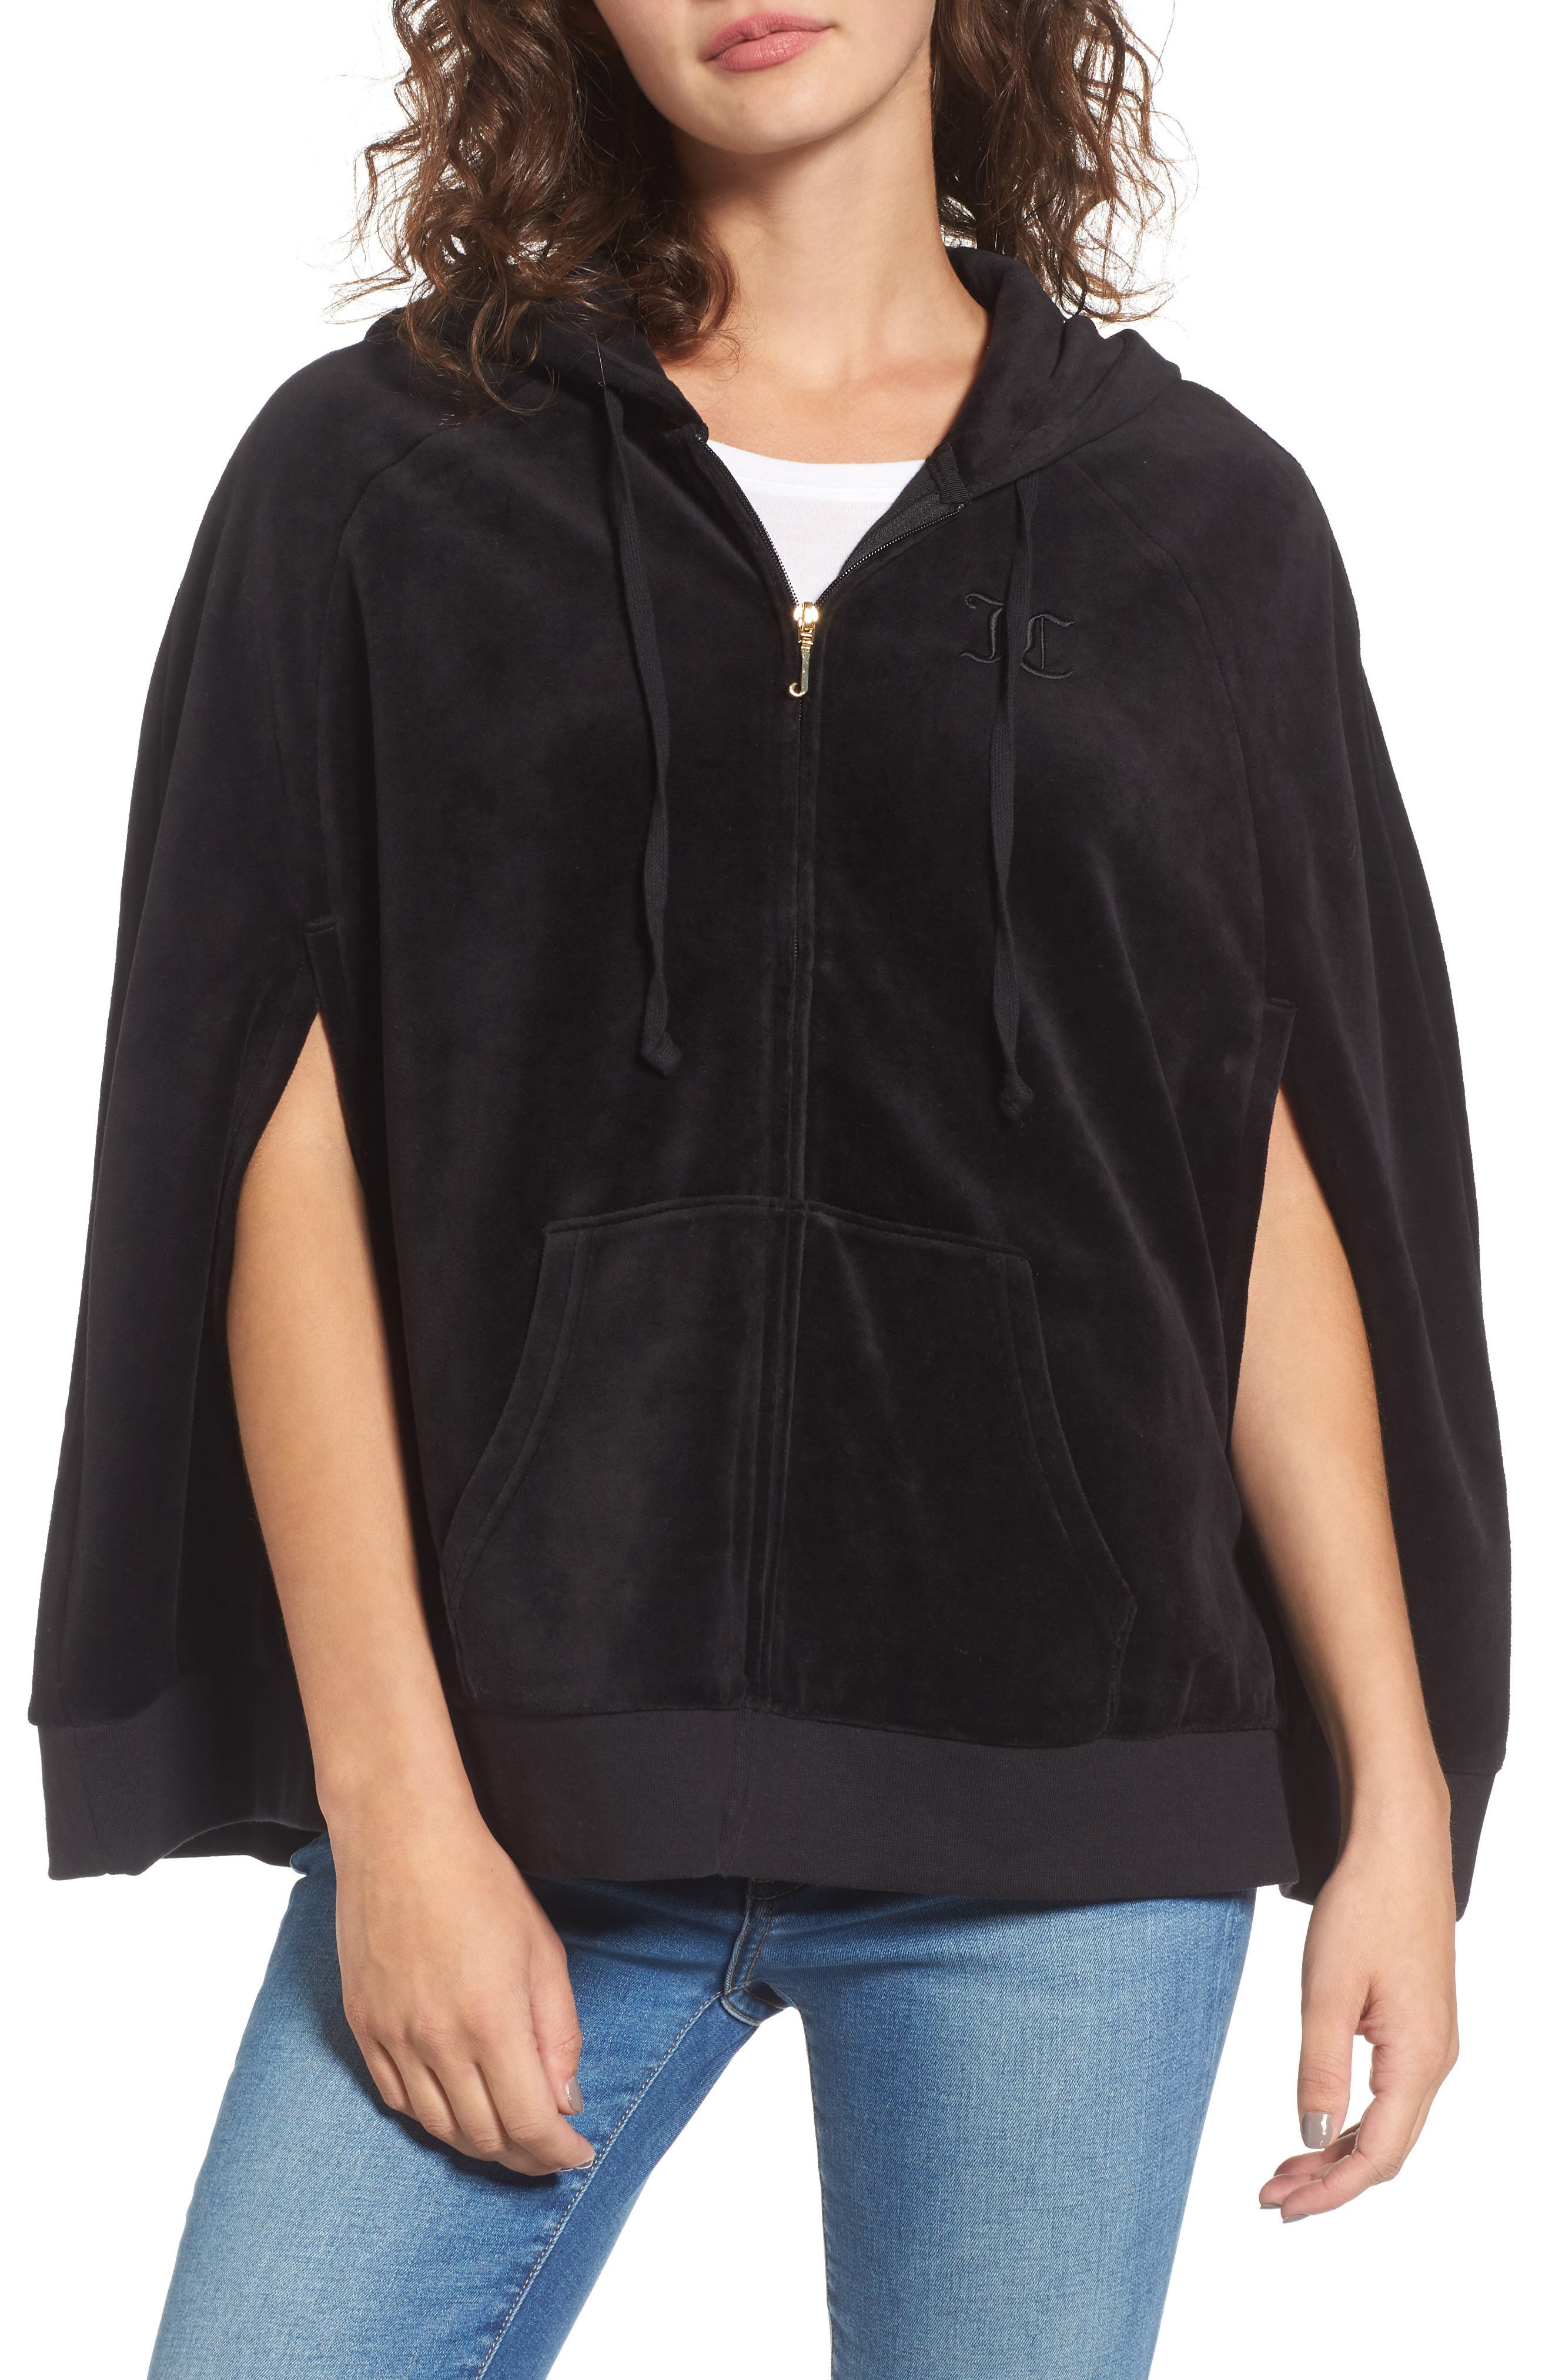 Alternate Image 1 Selected - Juicy Couture Velour Cape Jacket